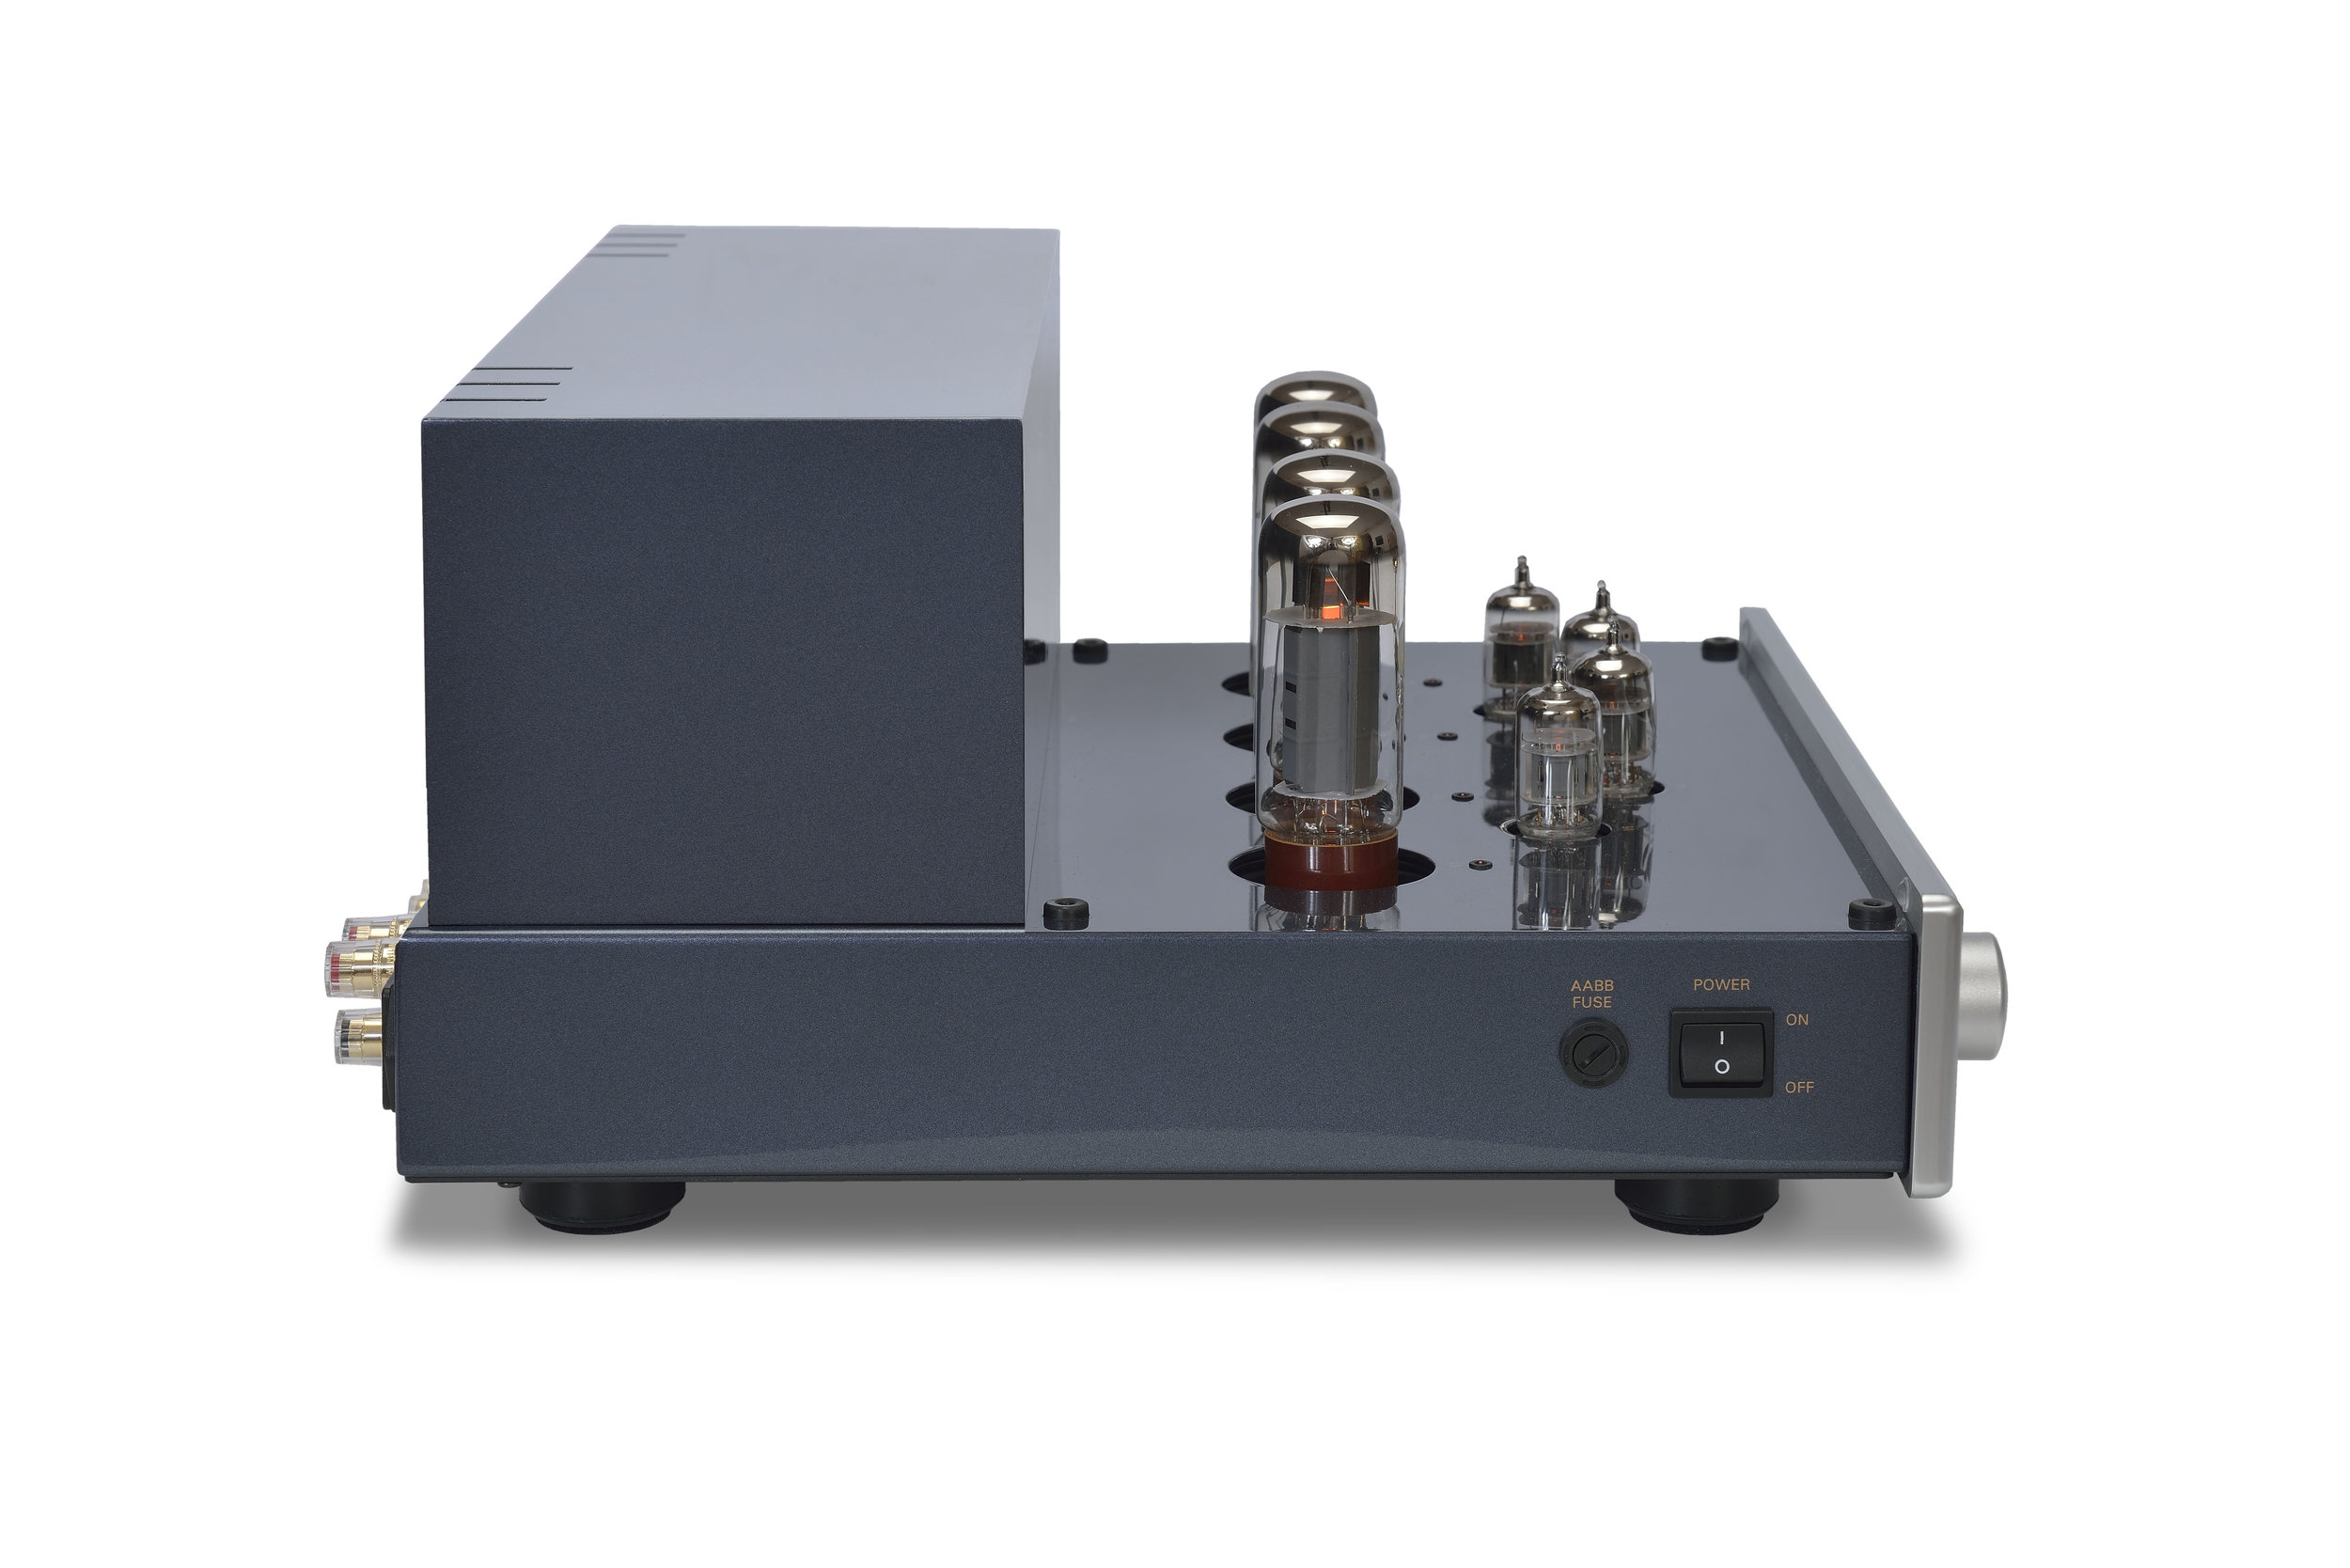 106b - PrimaLuna Evo 200 Tube Integrated Amplifier - silver - quarter turned - without cage - white background.jpg